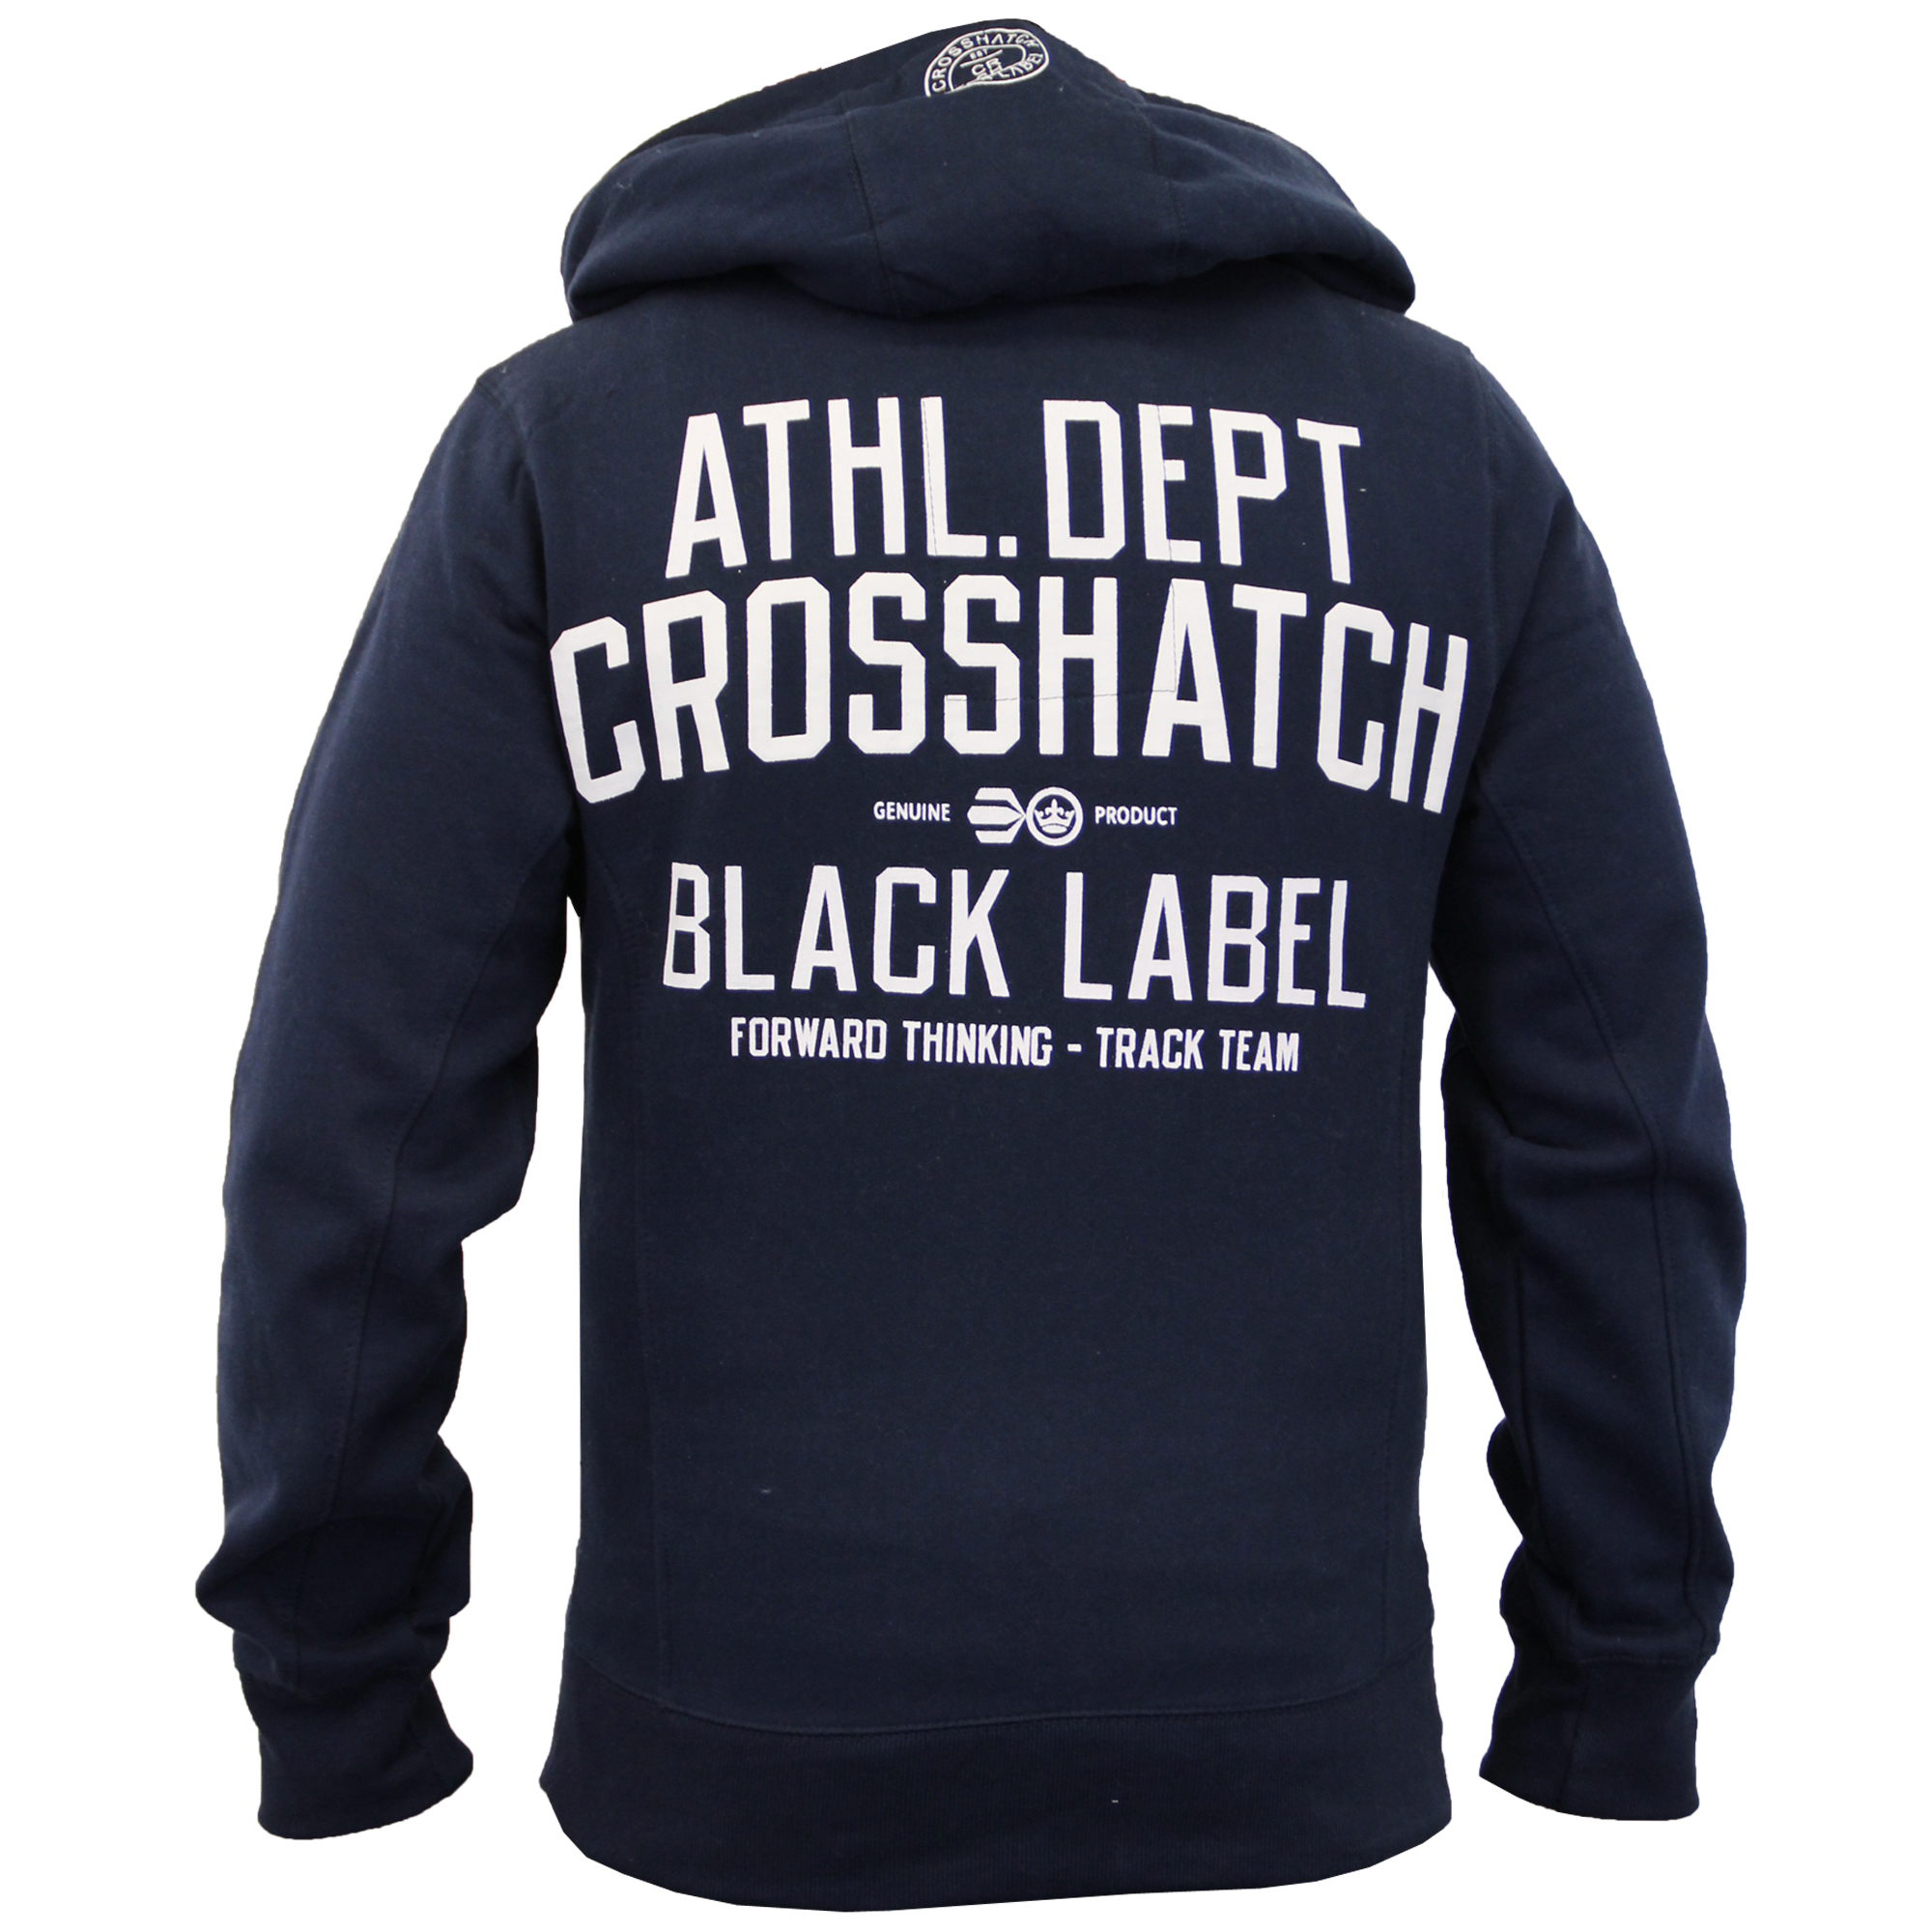 Mens-Hooded-Fleece-Lined-Top-Sweatshirt-By-Crosshatch thumbnail 7